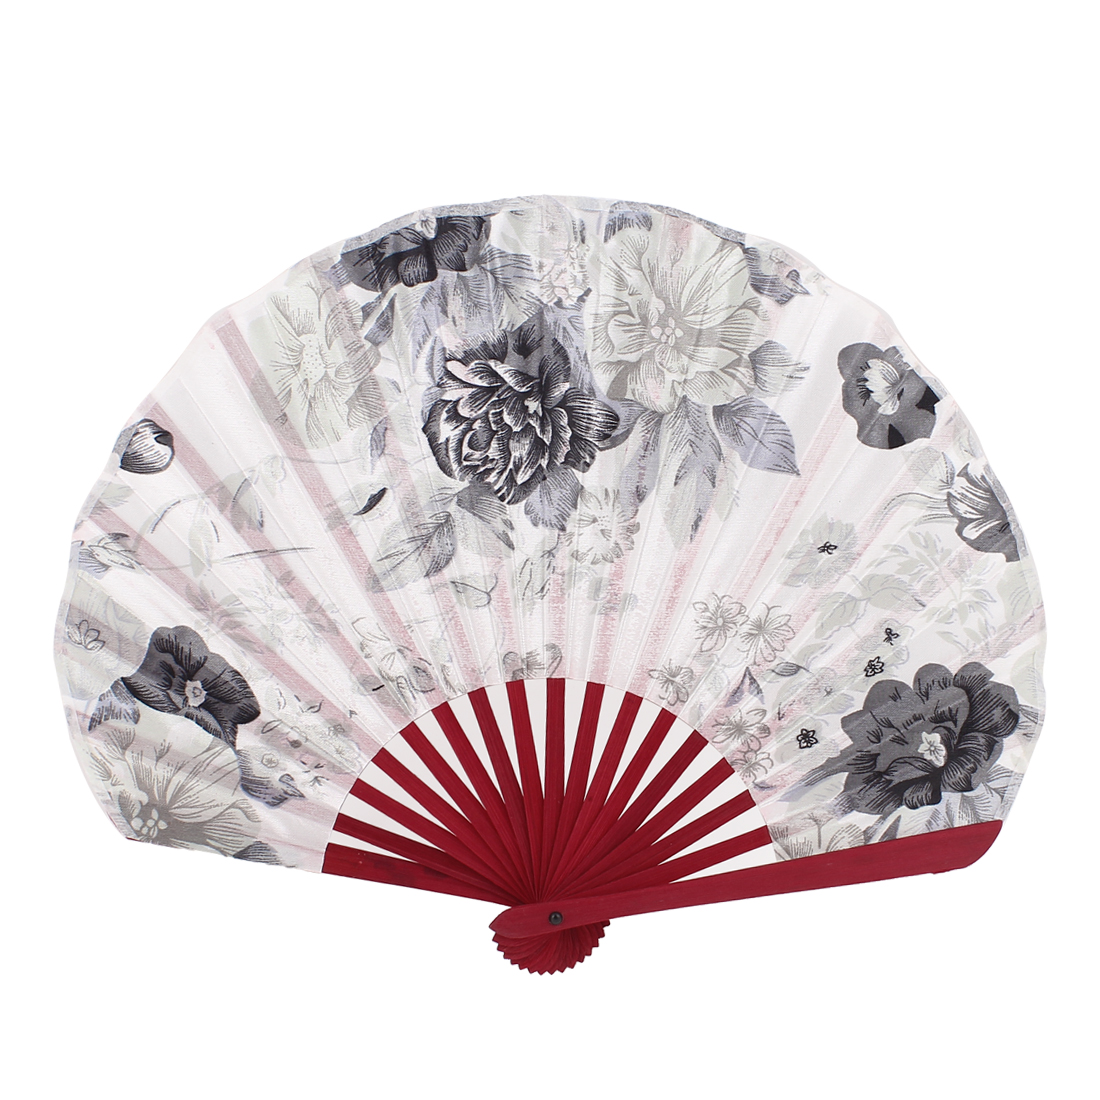 Bamboo Rib Collectible Lady Chinese Style Hand Fan Black White